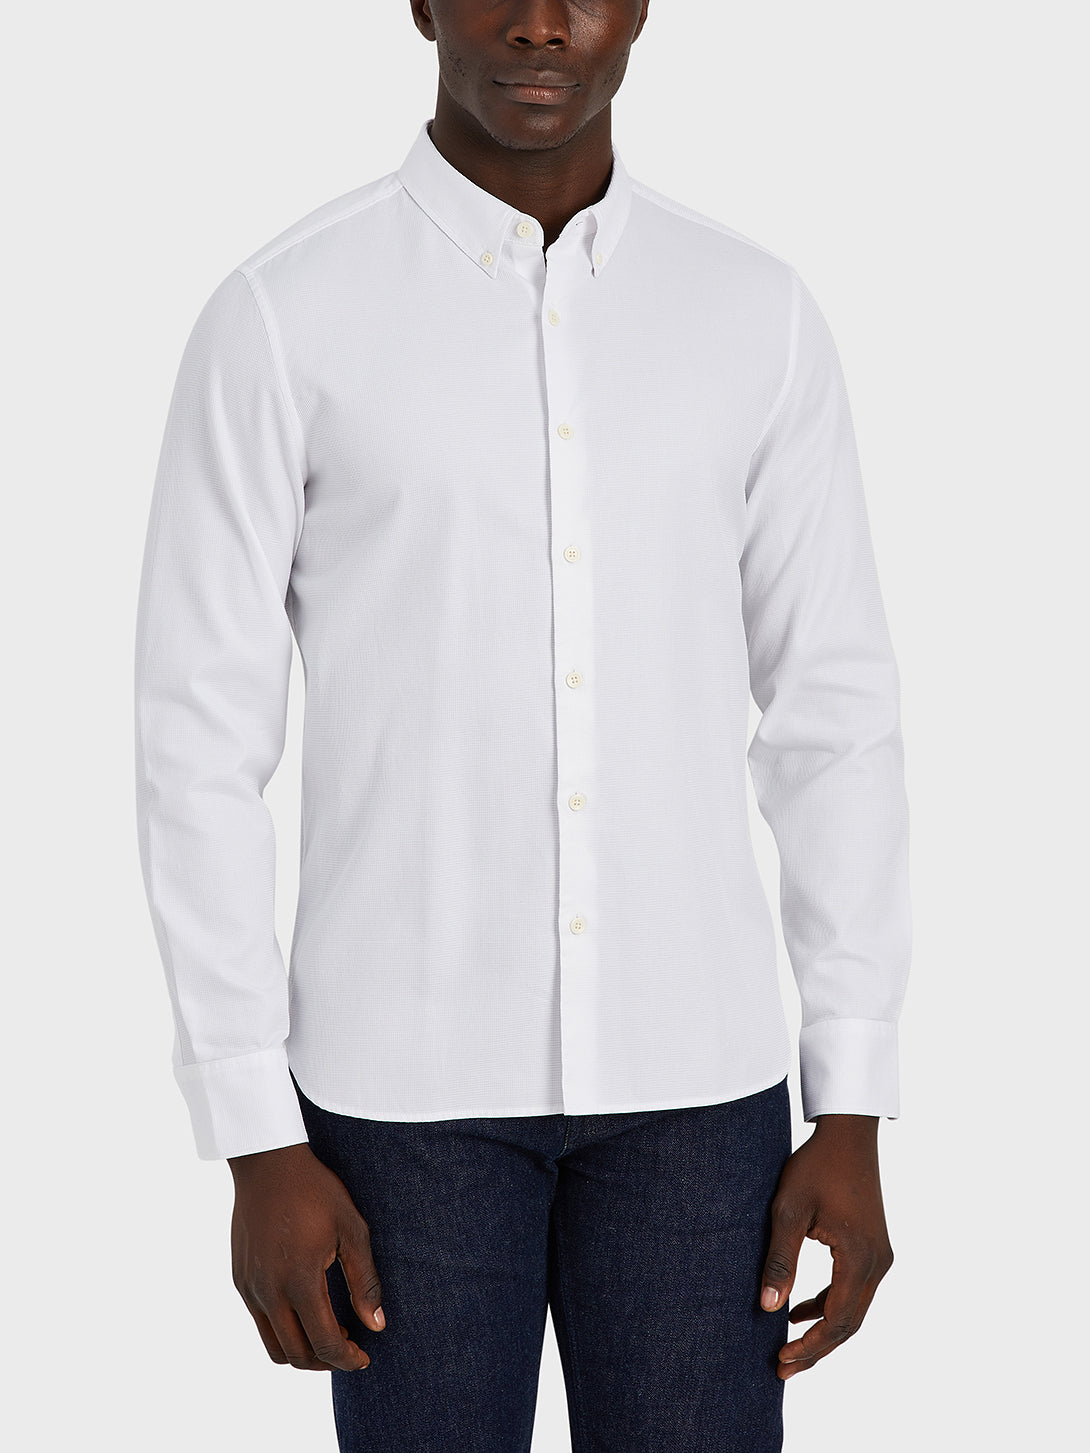 ONS Clothing Men's shirt in WHITE